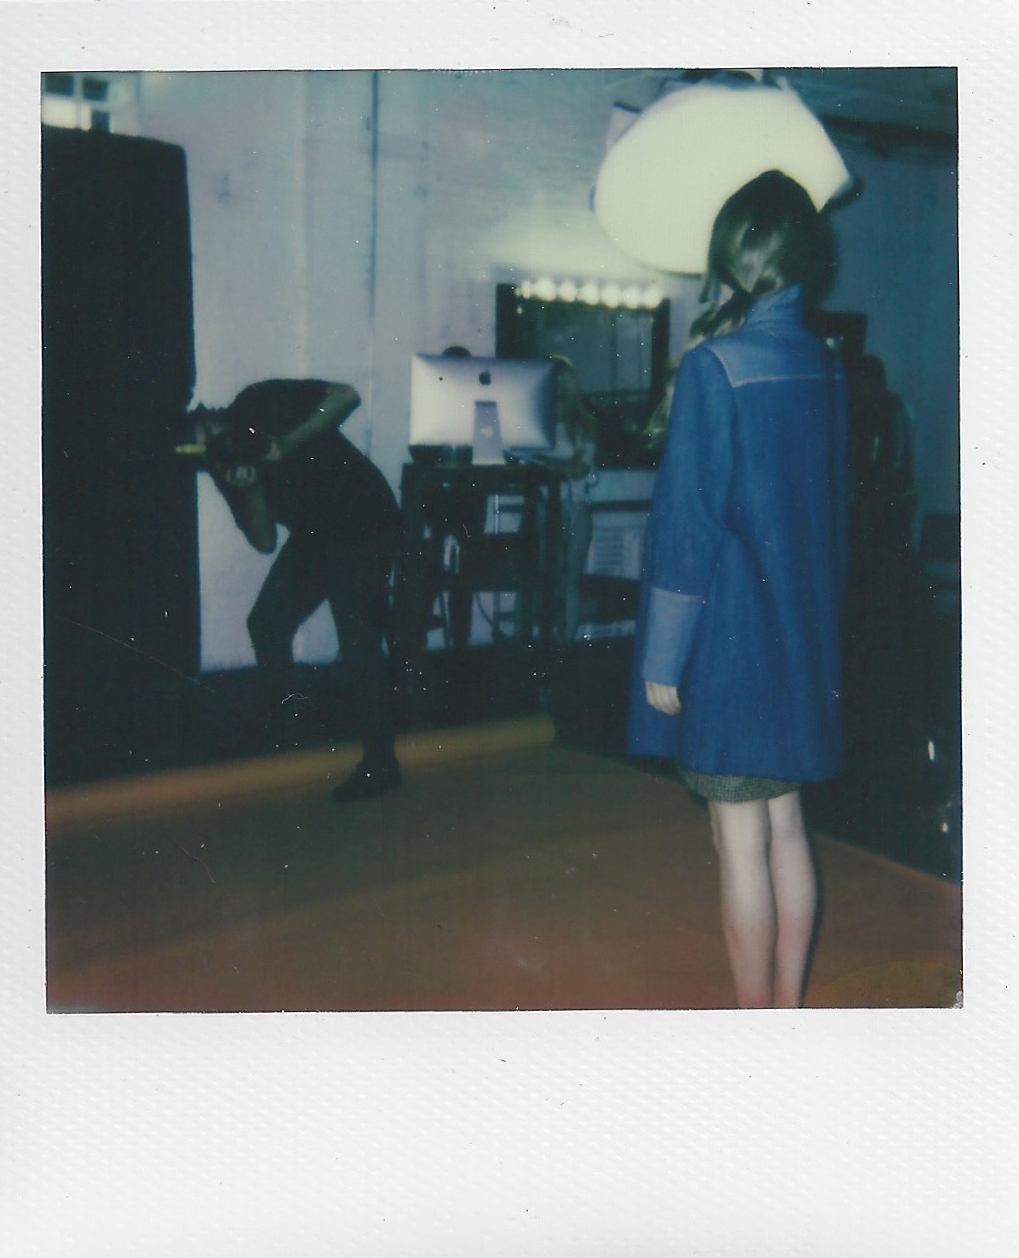 NYC_Fashion_Photographer_Polaroid_Behind_The_Scenes_Photoshoot_Impossible_Film_Camera_Women_Models_Aliyah_Galiautdinova